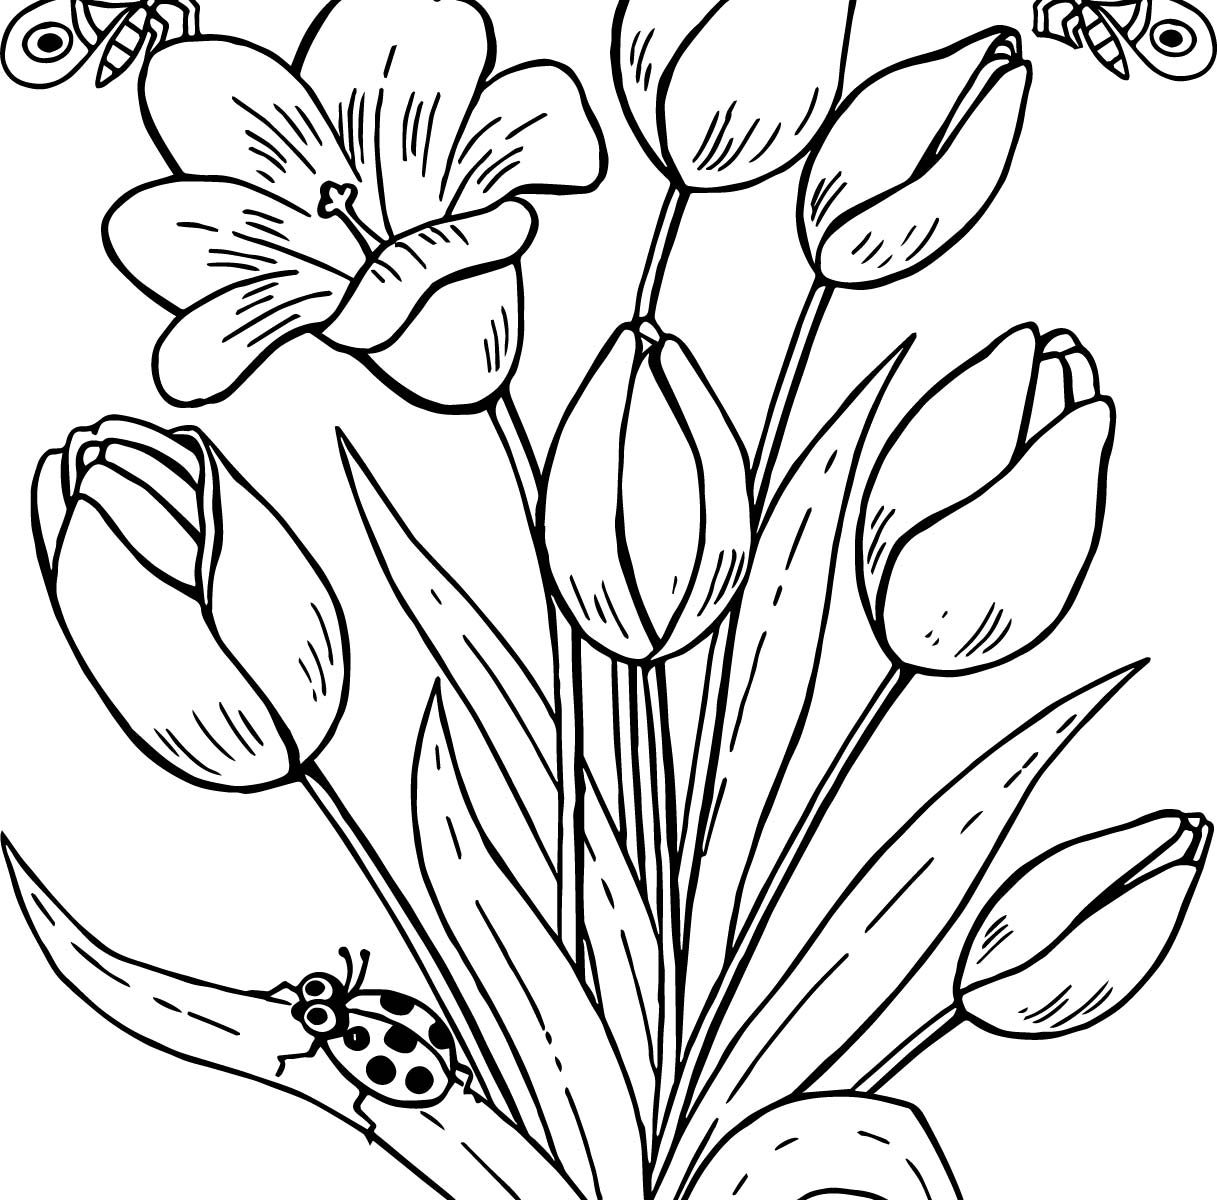 1217x1200 Printable Butterflies And Flowers Coloring Pages Free Cartoon For